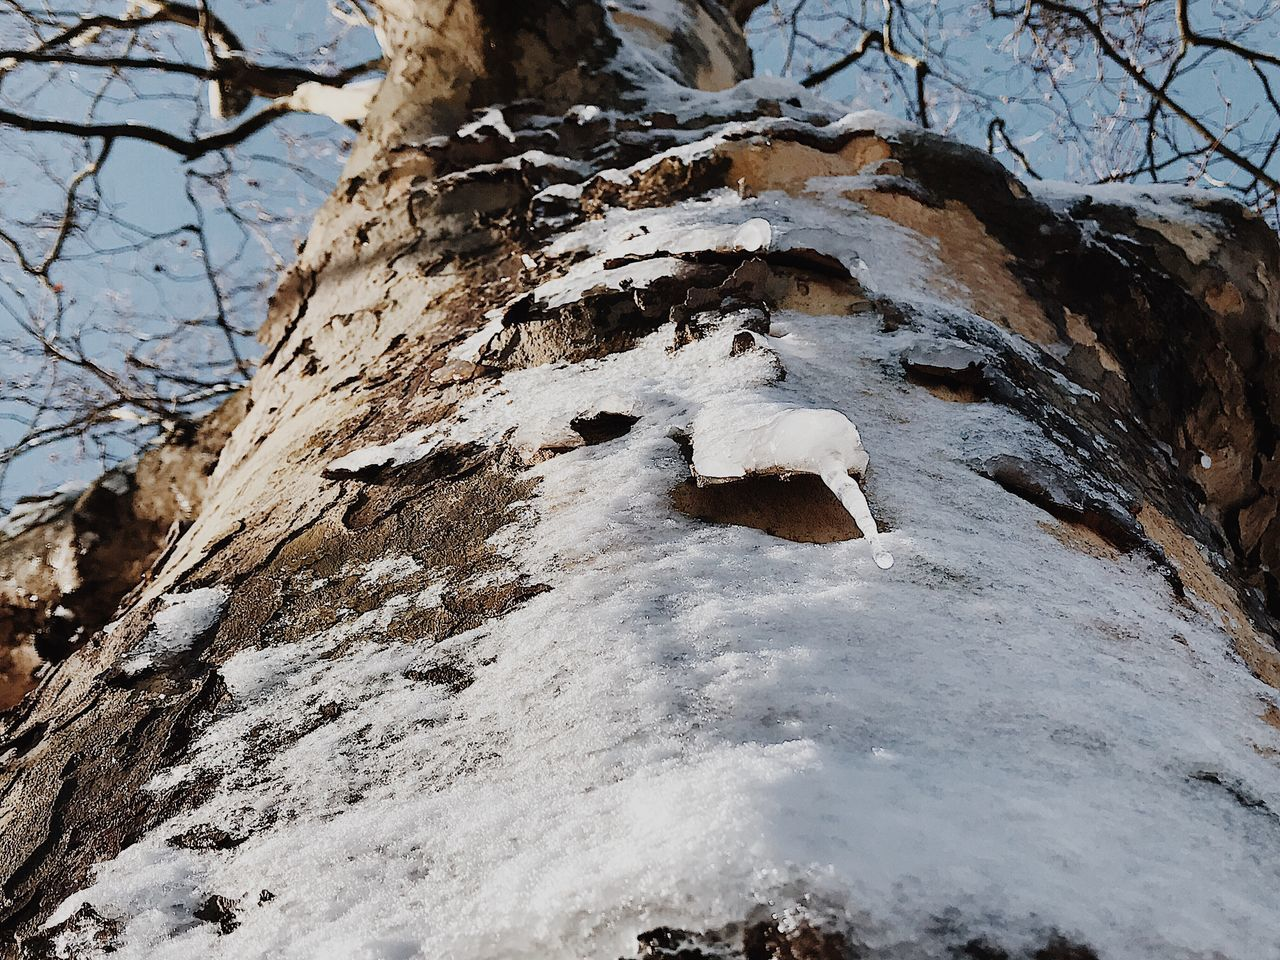 Snow Nature Cold Temperature Winter Tranquility Beauty In Nature Outdoors No People Day Sky Animal Themes Close-up Ice Frozen Winter Beauty In Nature Tree Trunk Tree Nature Water Branch Tranquility